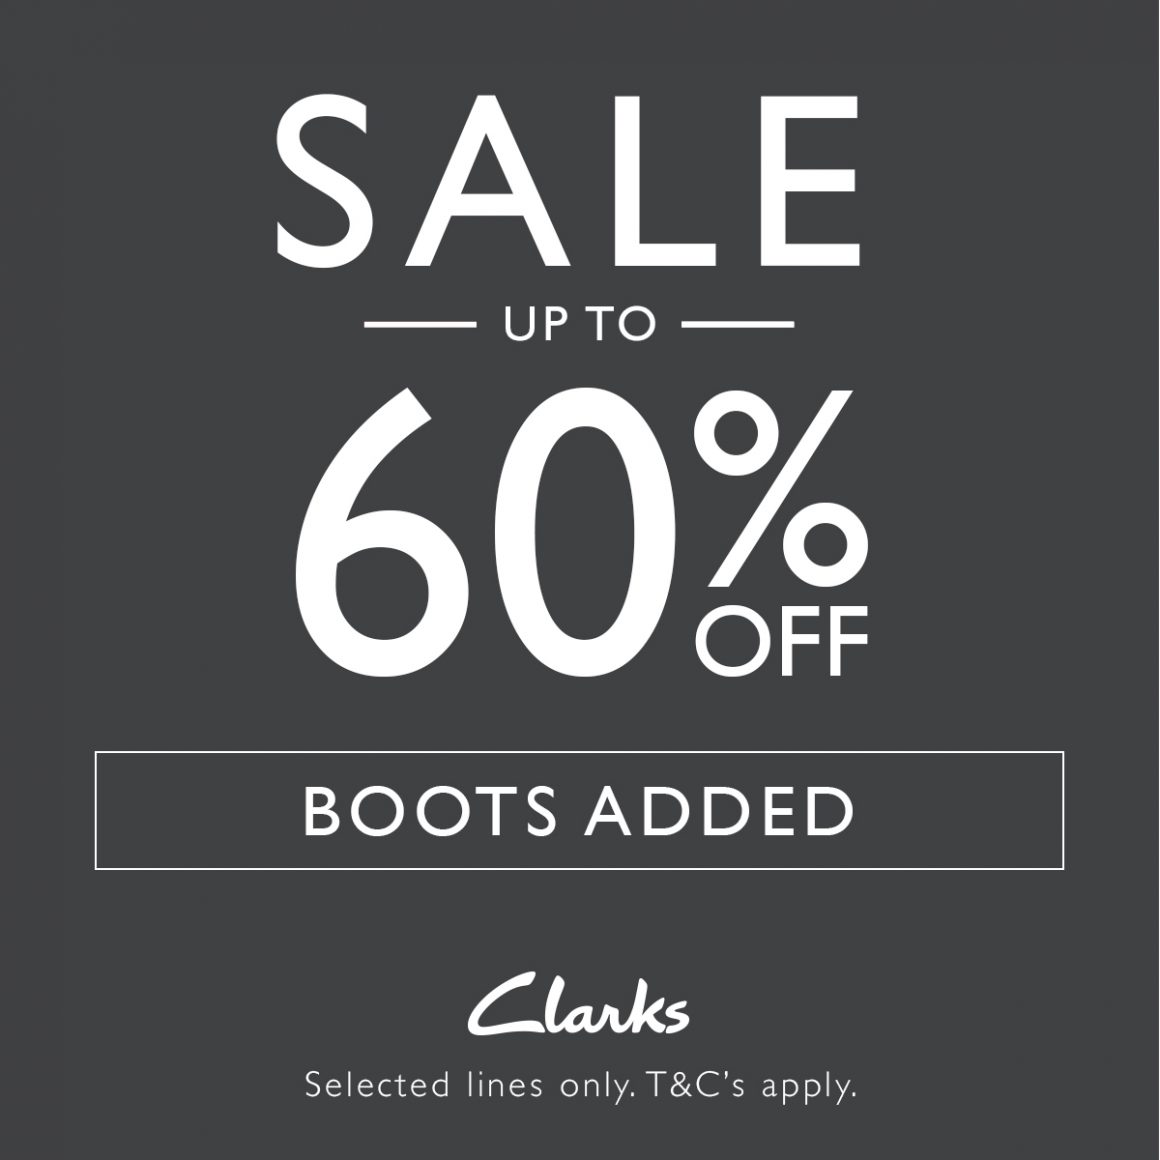 UP TO 60% OFF IN CLARKS SALE